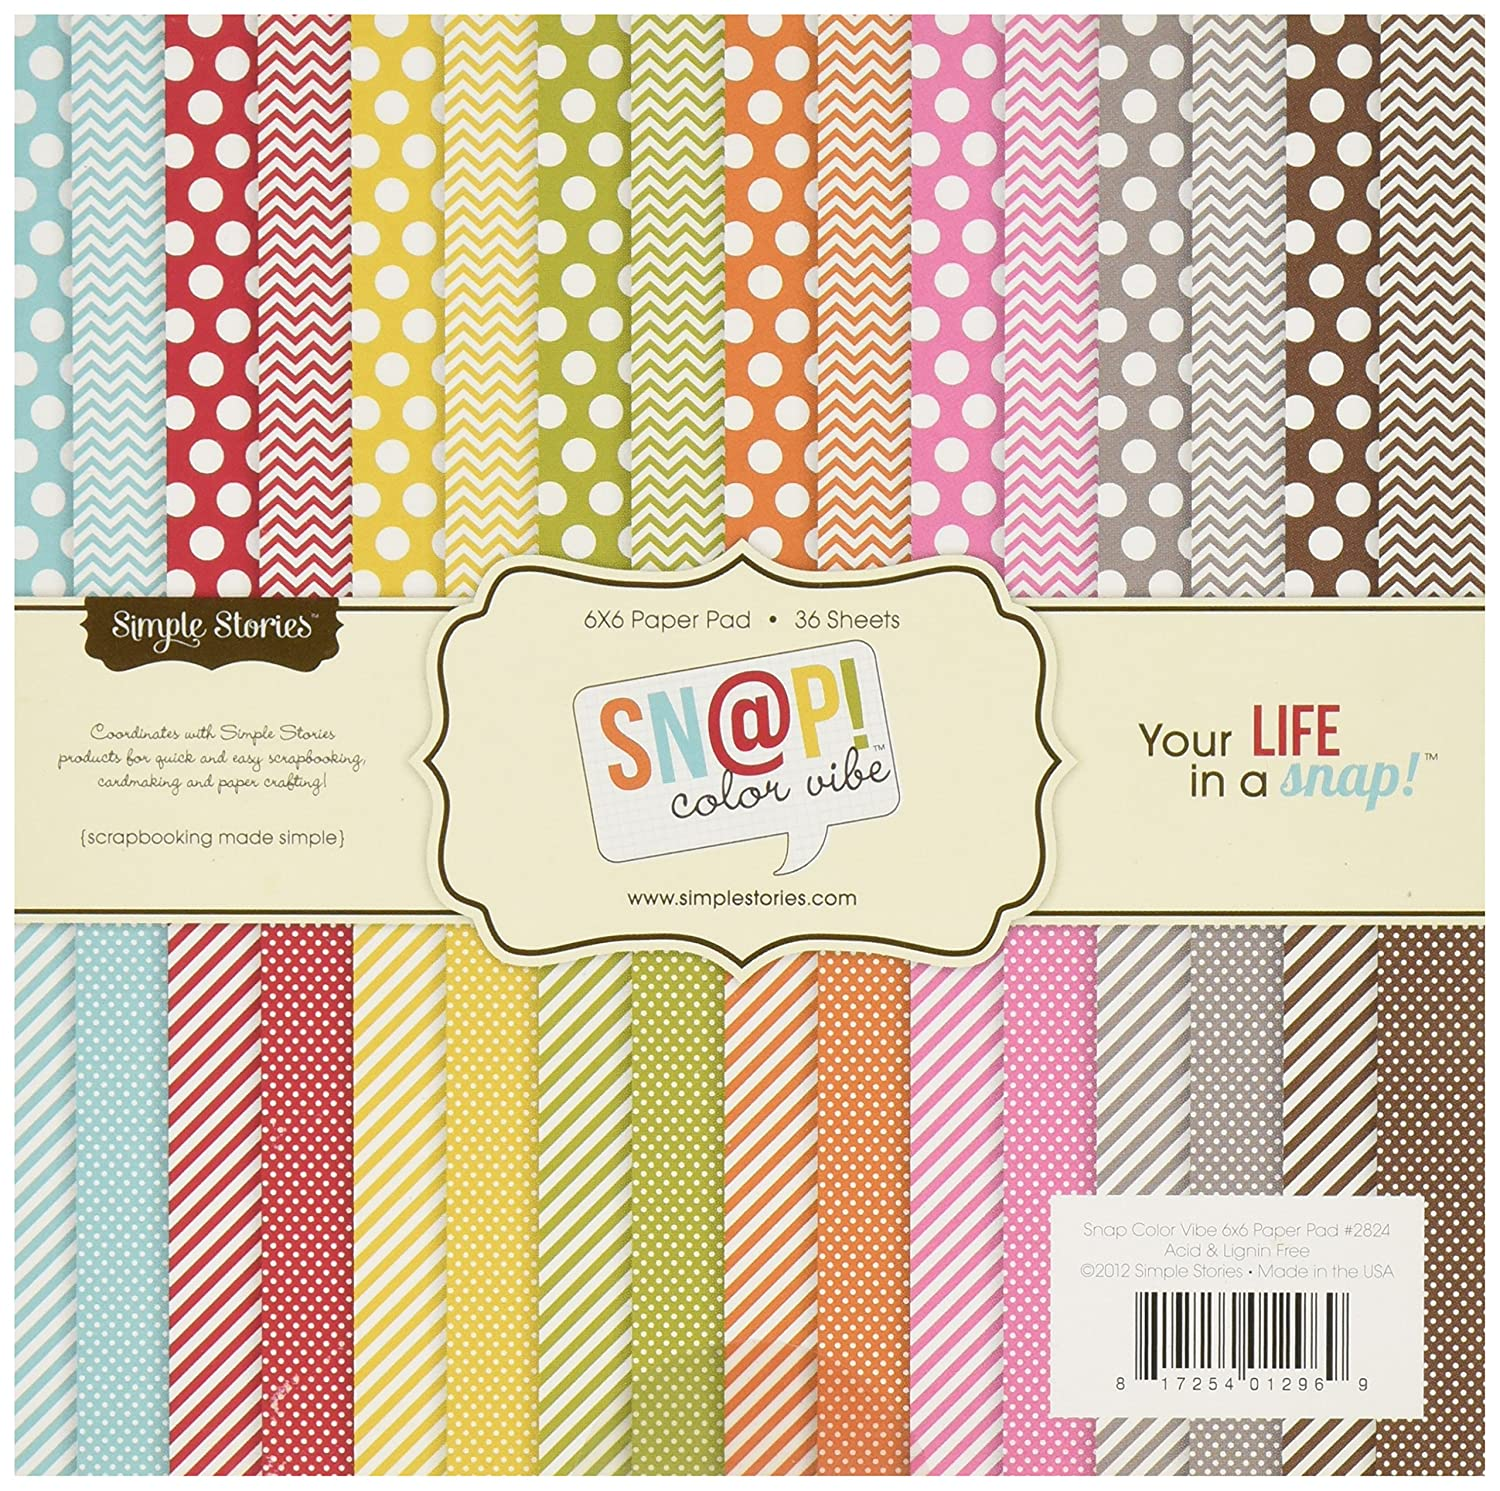 """Sn@p! Color Vibe Collection Paper Pad 6""""X6"""" 36 Sheets-"" Simple Stories SNAP2824"